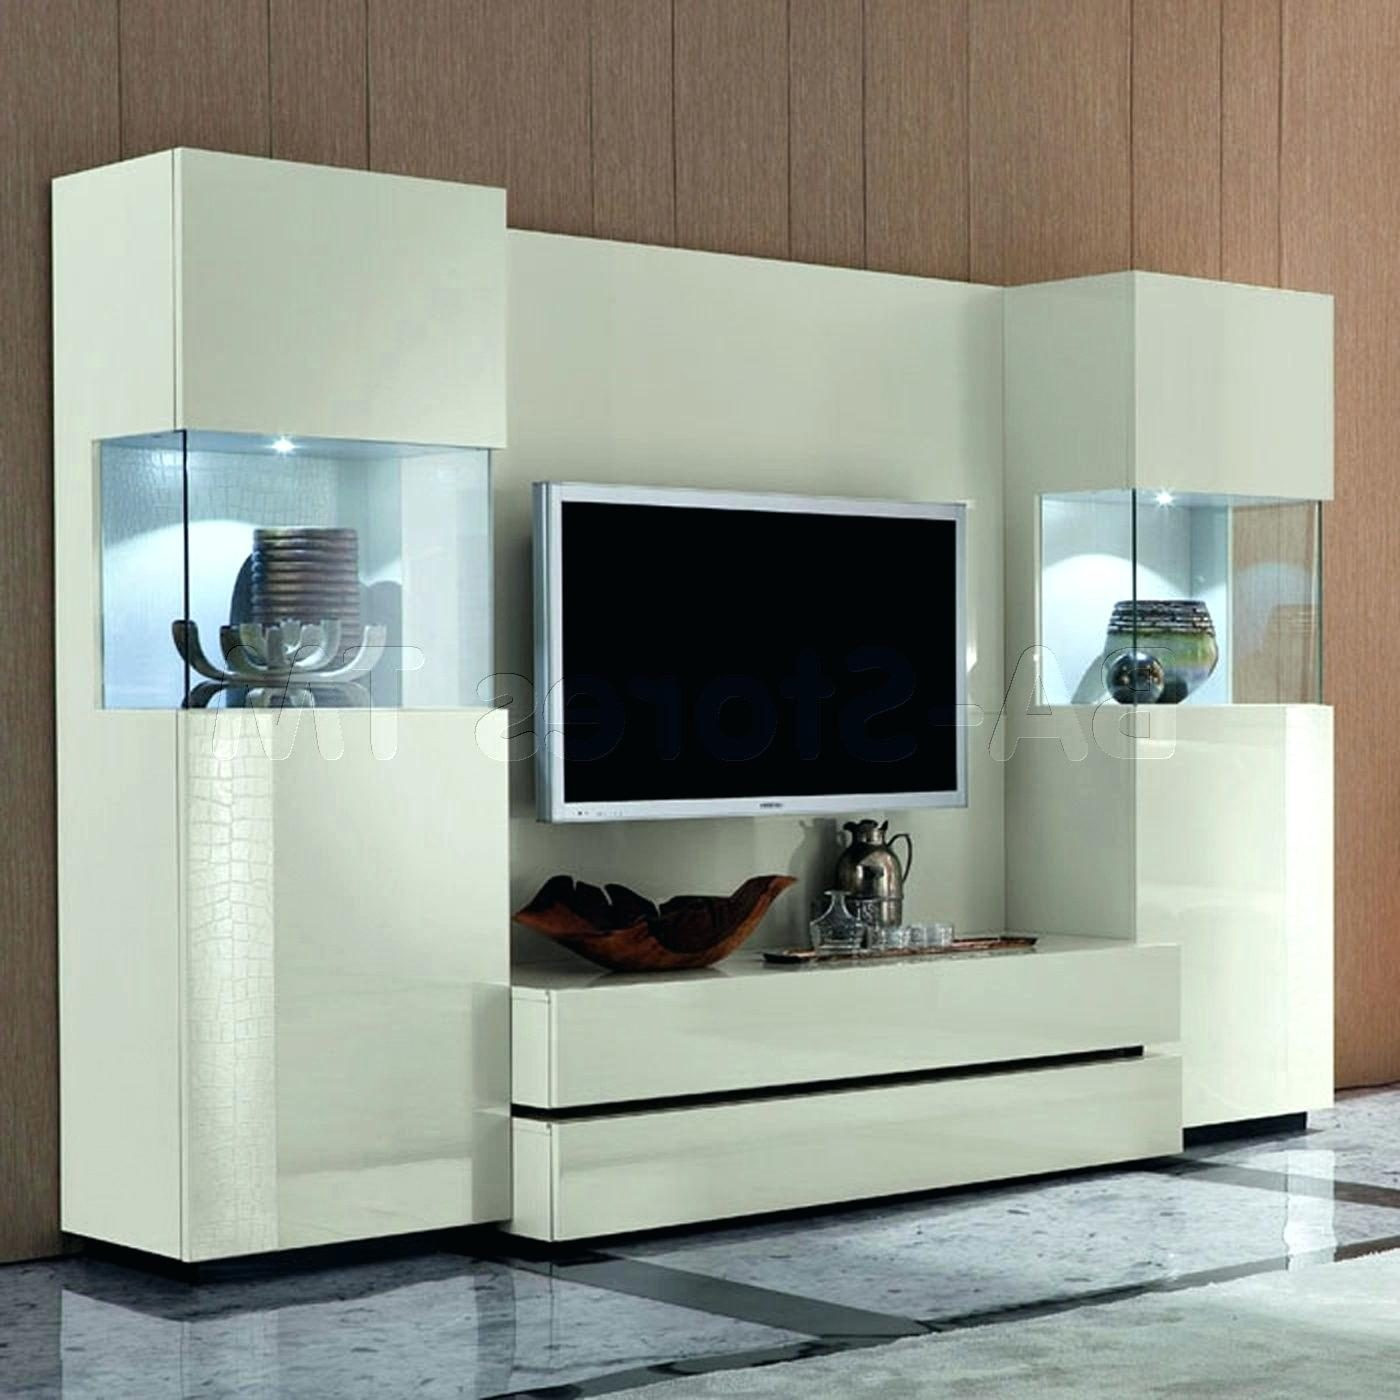 Remarkable Bedroom Wall Unit Of Units Wardrobe Designs With Tv Units Interesting